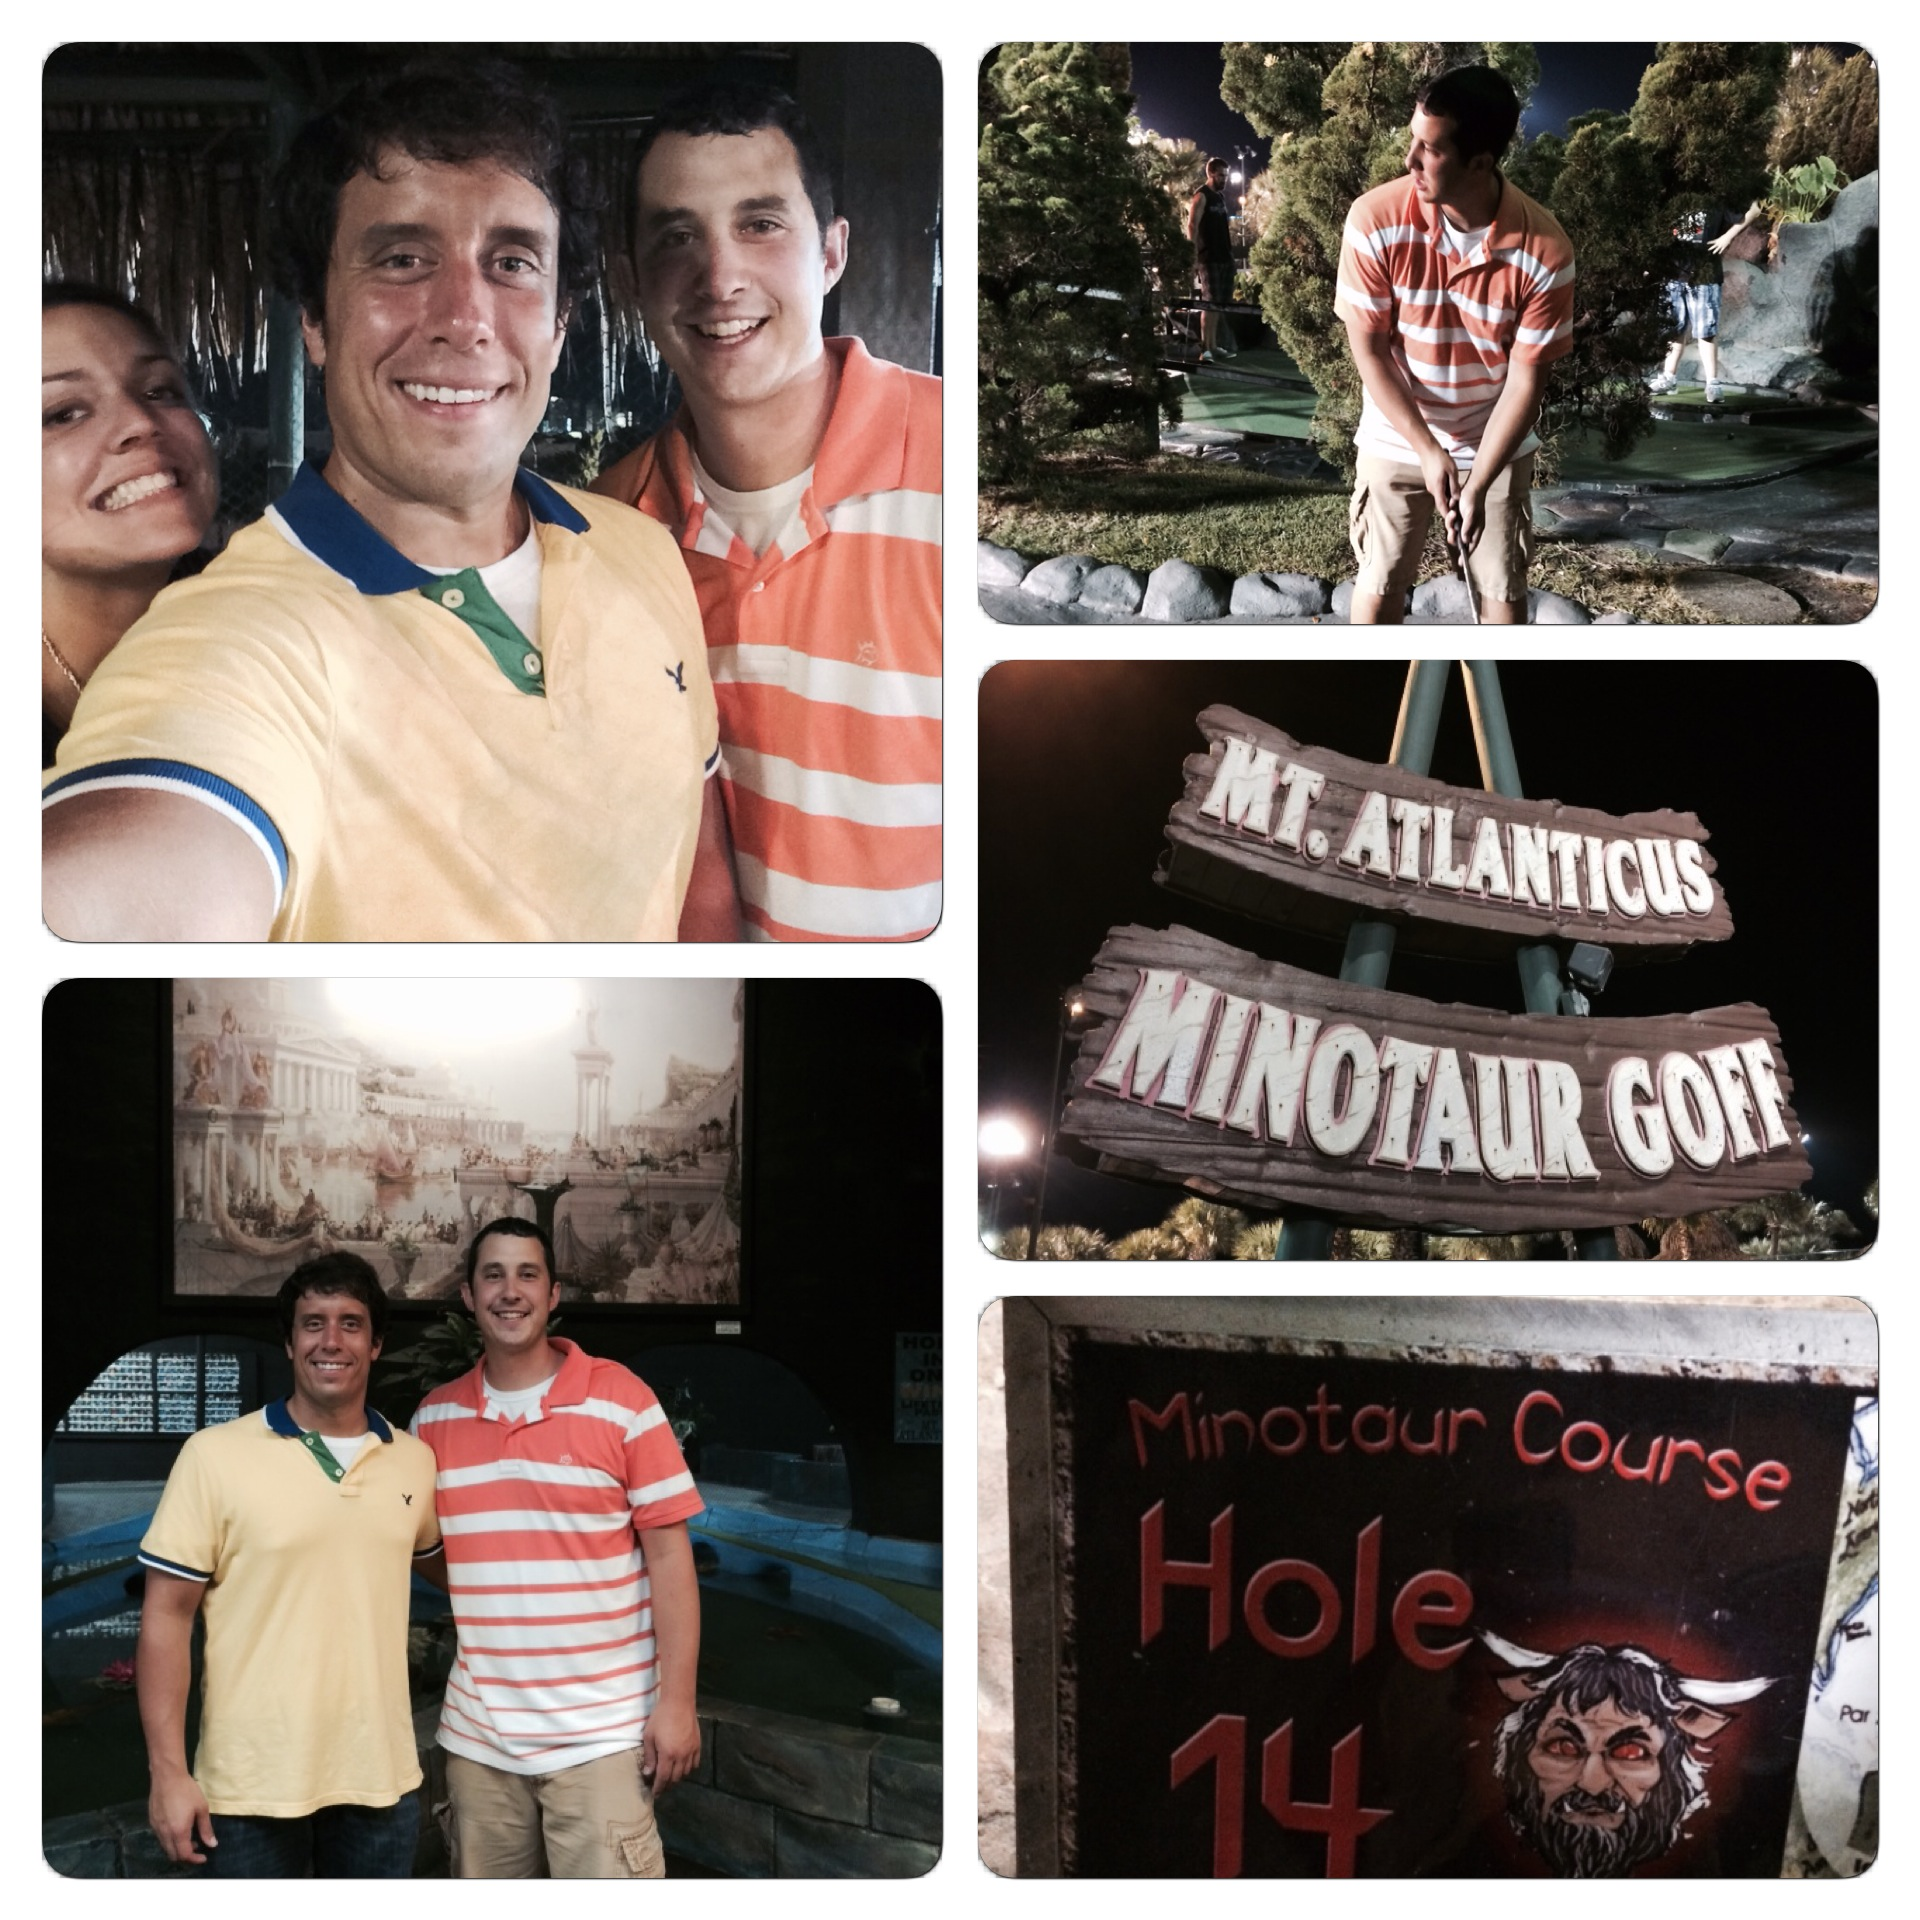 Playing some putt putt at Mt. Atlanticus was a fun way to start Glen's vacation.